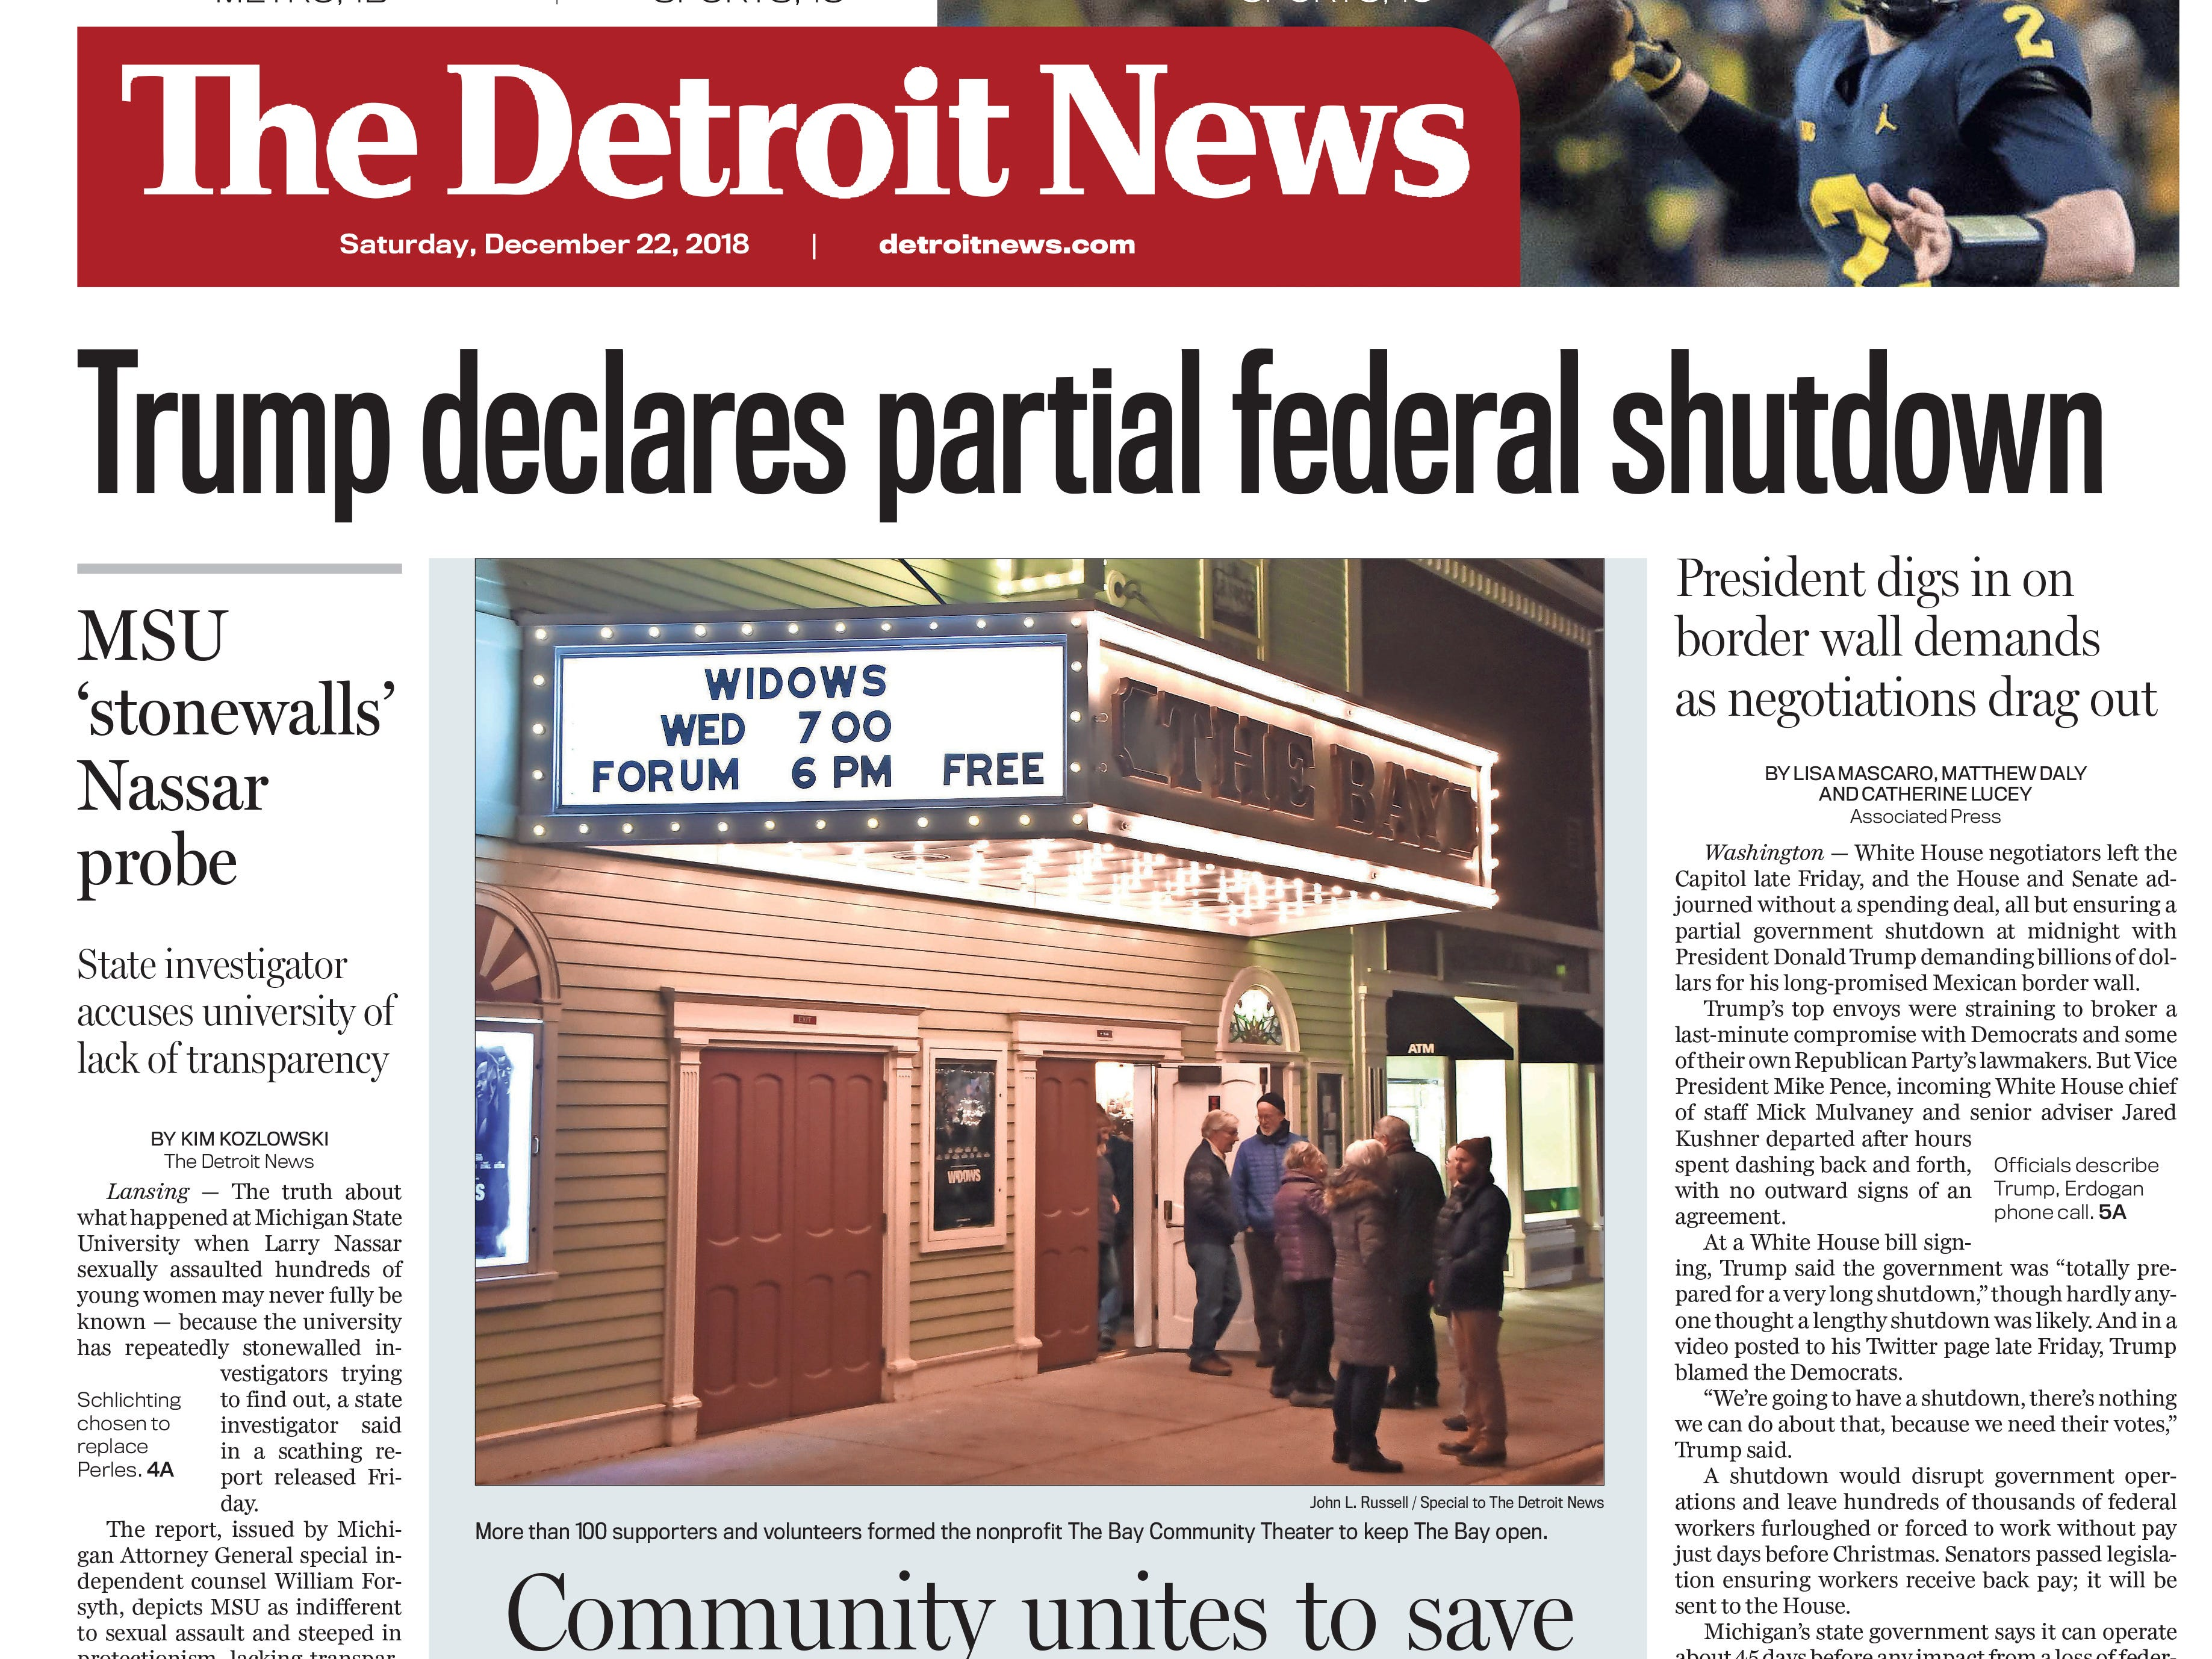 The front page of the Detroit News on Saturday, December 22, 2018.